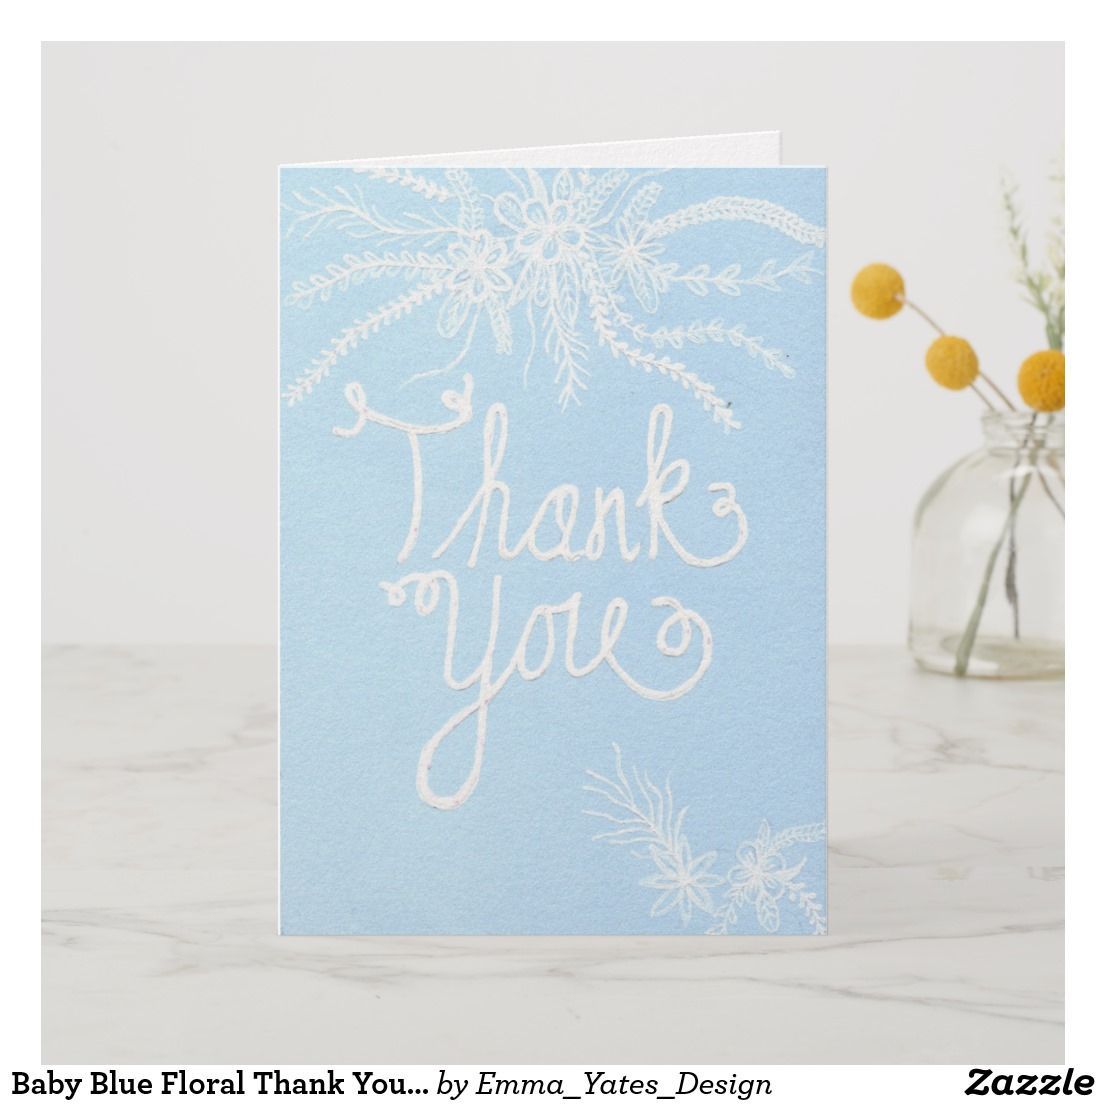 Baby Blue Floral Thank You Card